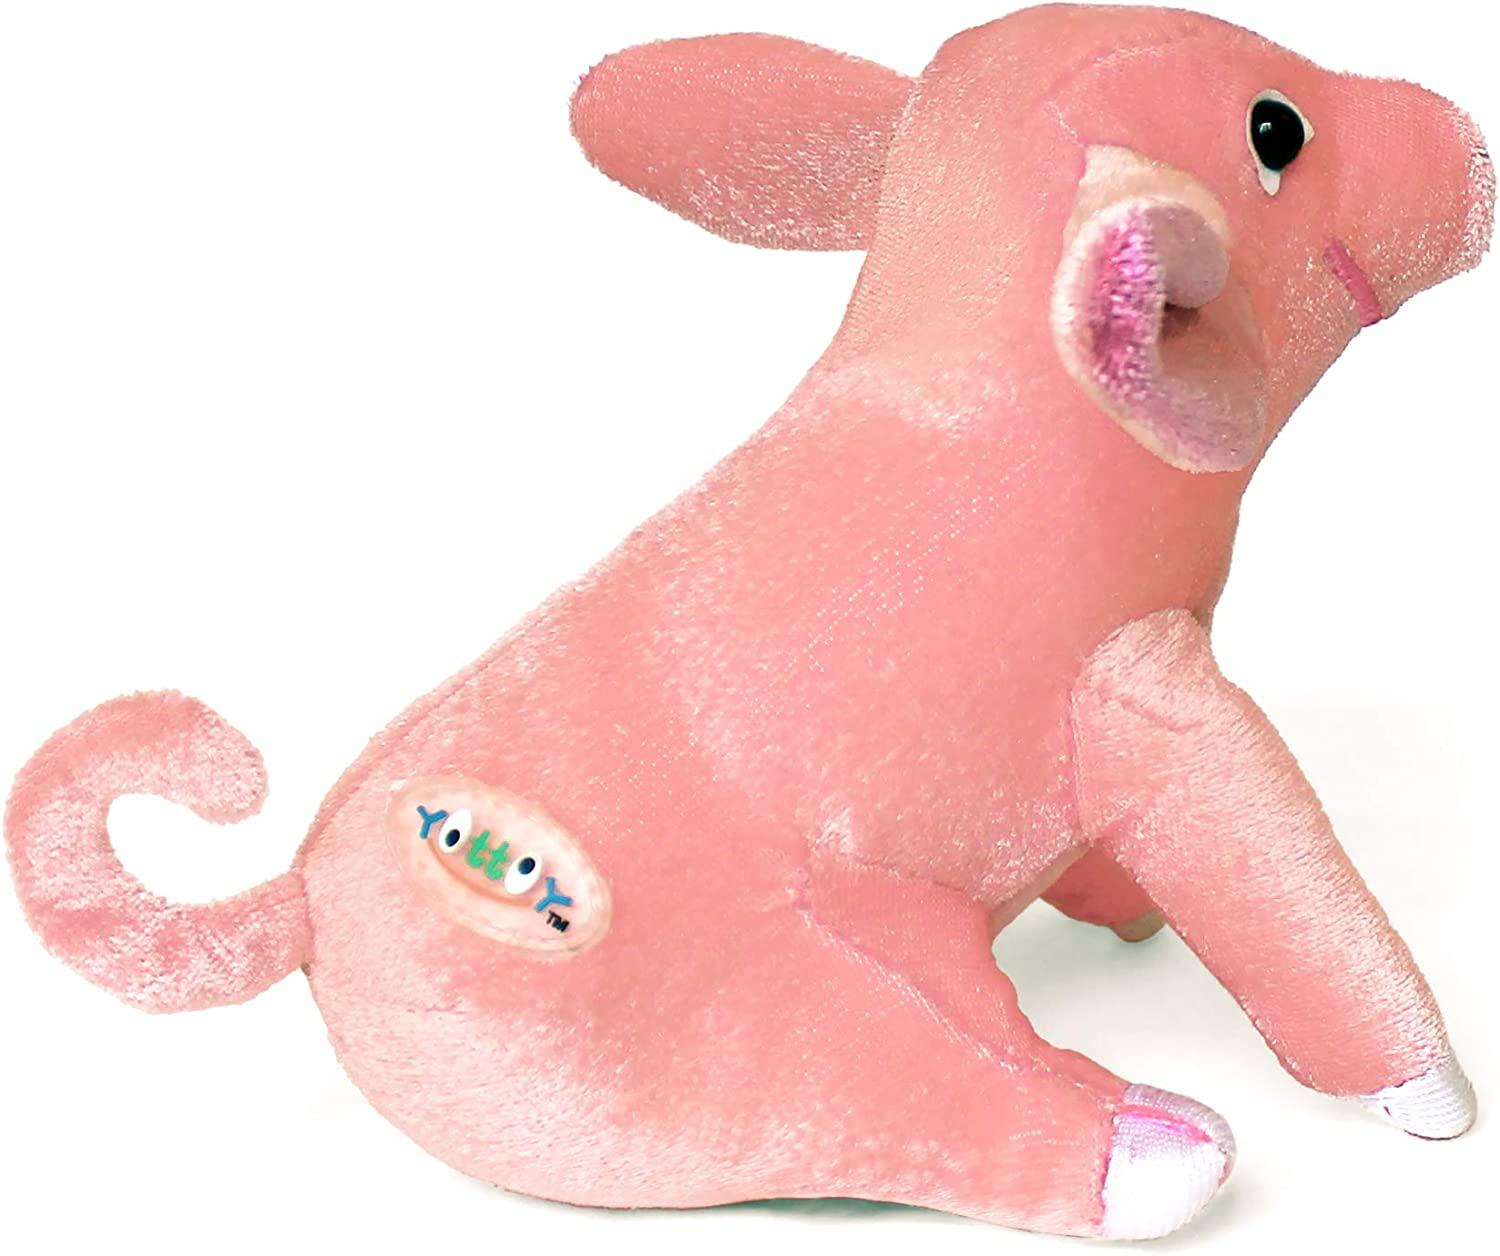 """Details about  /YOTTOY Biddle Collection Little Biddle Pig Stuffed Plush Toy 4"""" Item #362"""